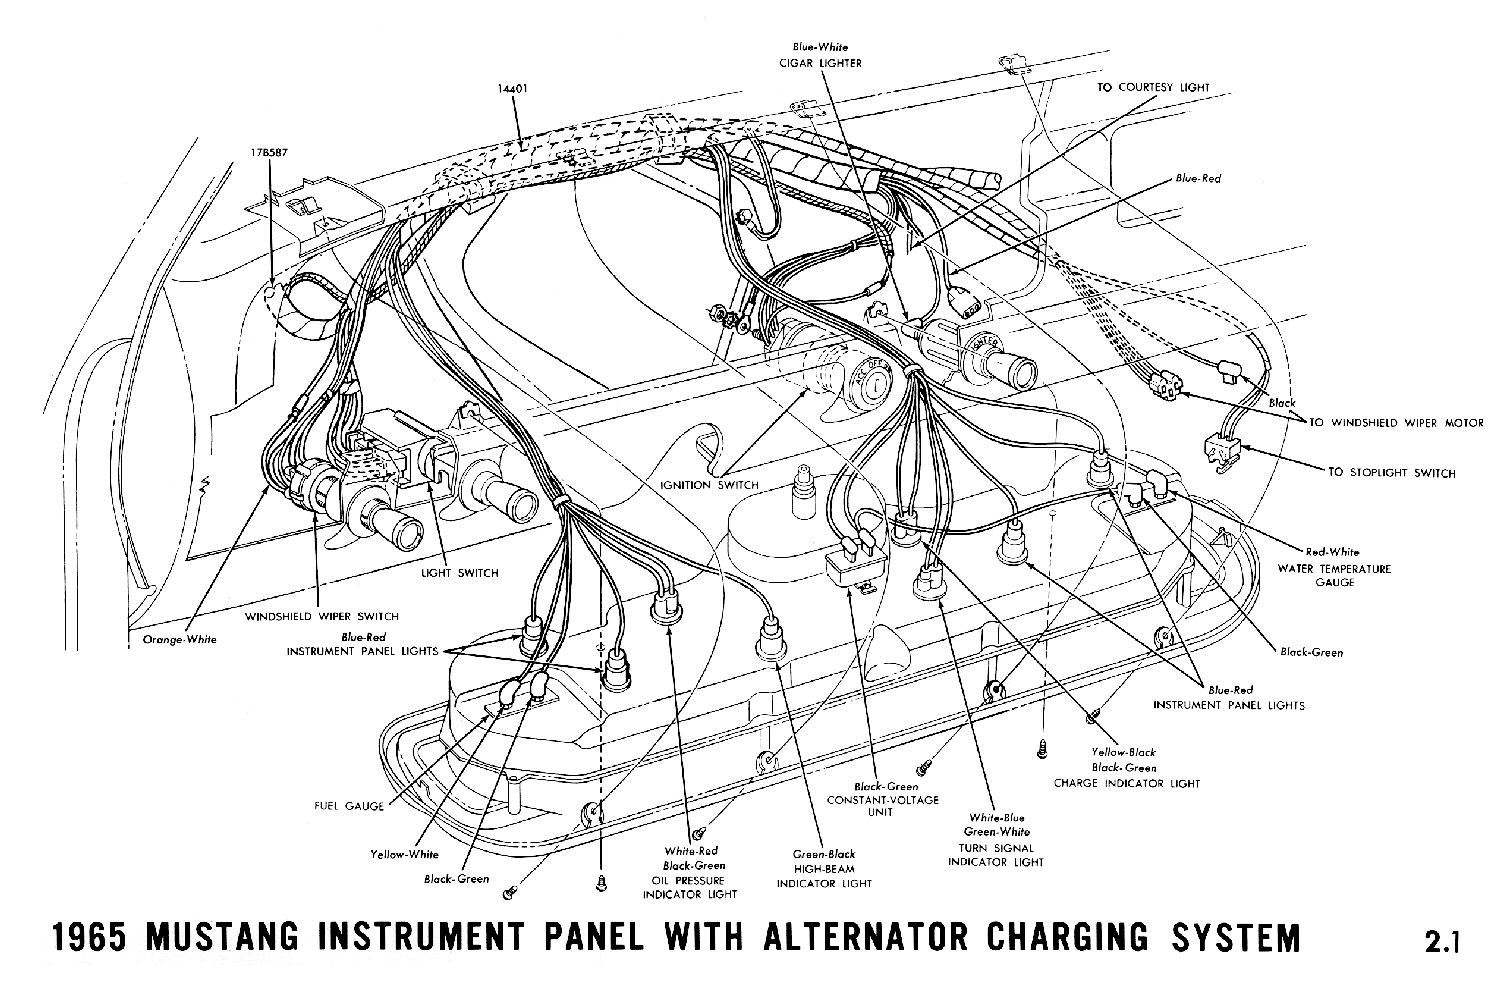 1965 Mustang Wiring Diagrams Average Joe Restoration October 2012 Mercedes Fuse Box Diagram 1965a